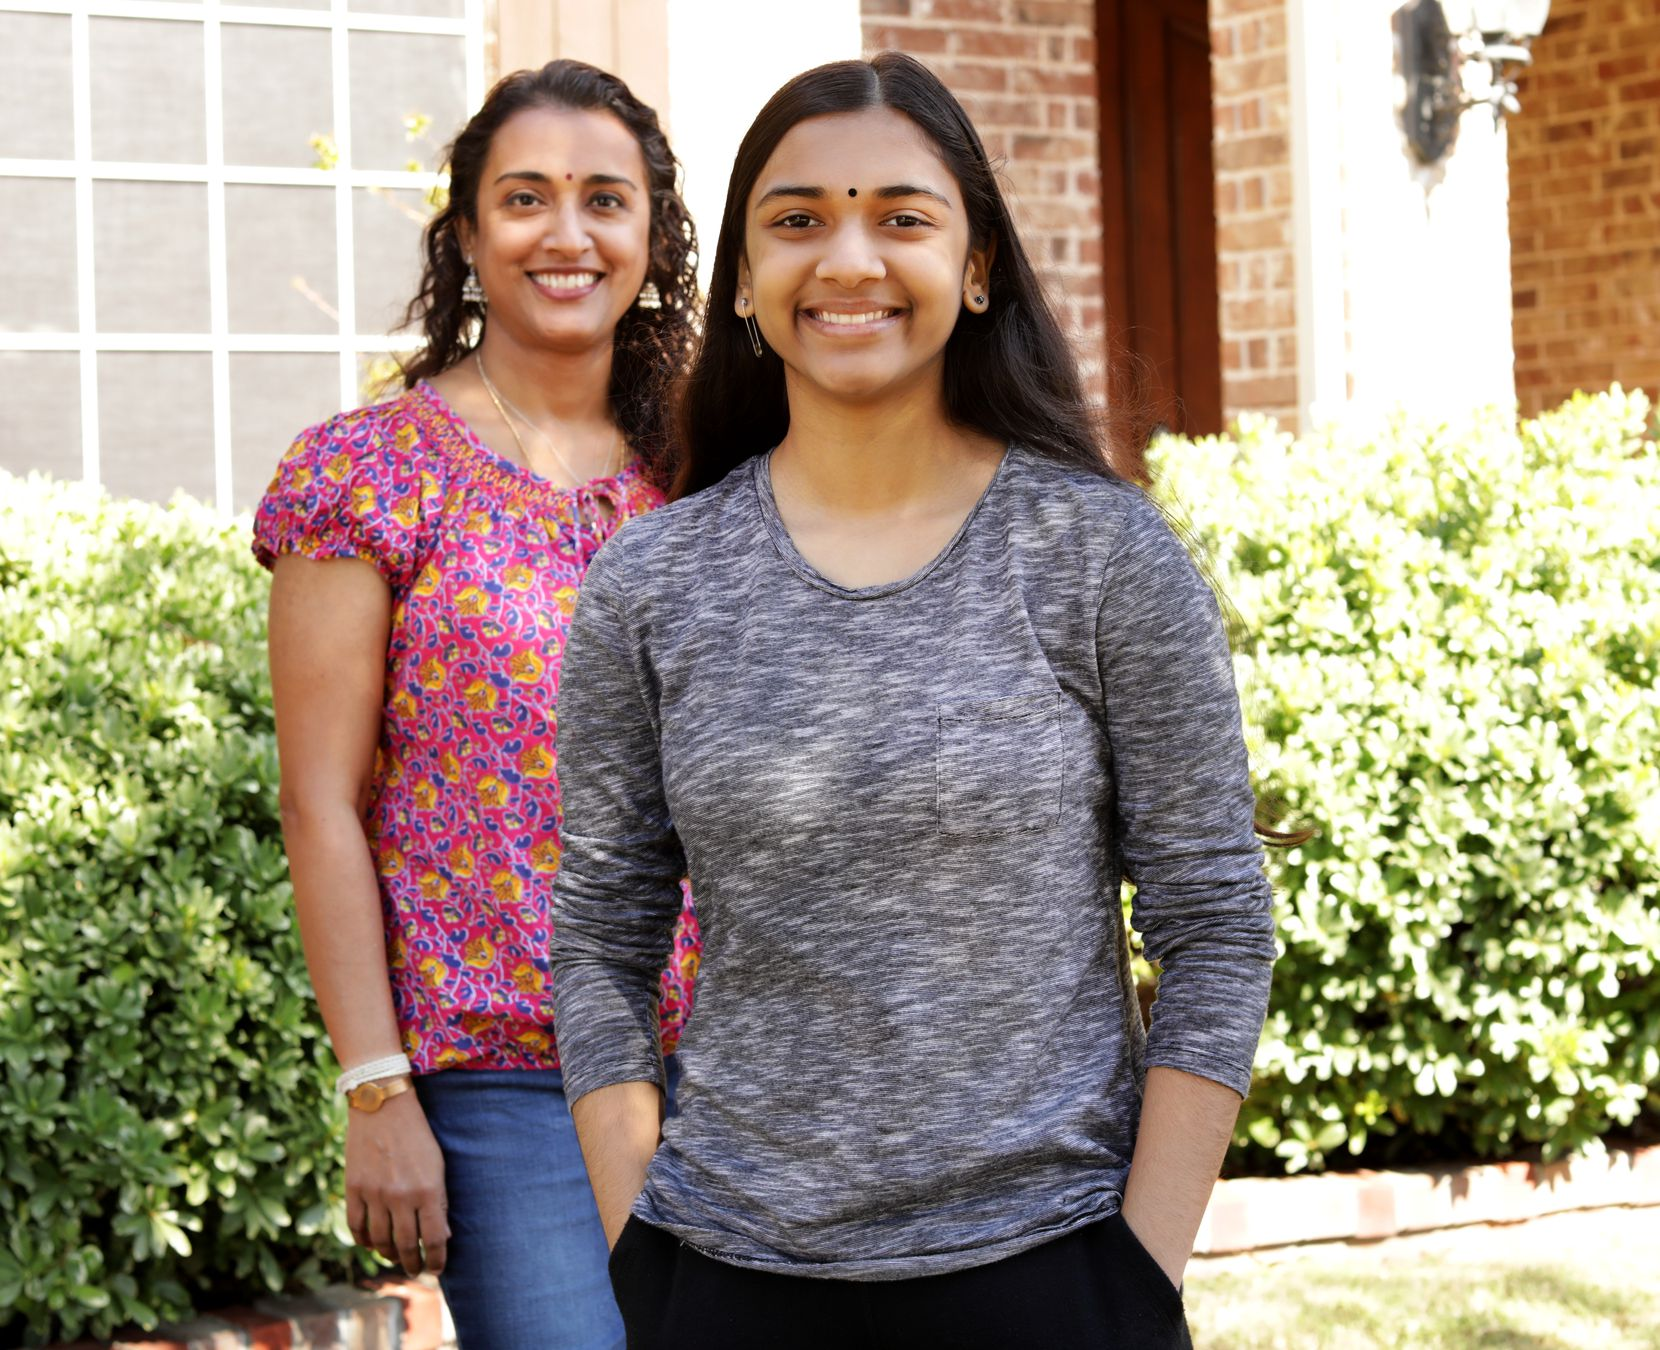 Sunitha Cheruvu, left, and her daughter Jayanti, 14, speak about the impact of watching Kamala Harris emerge as the first female vice president. Harris, whose father was Jamaican and mother Indian, has inspired many young Indian-American women.